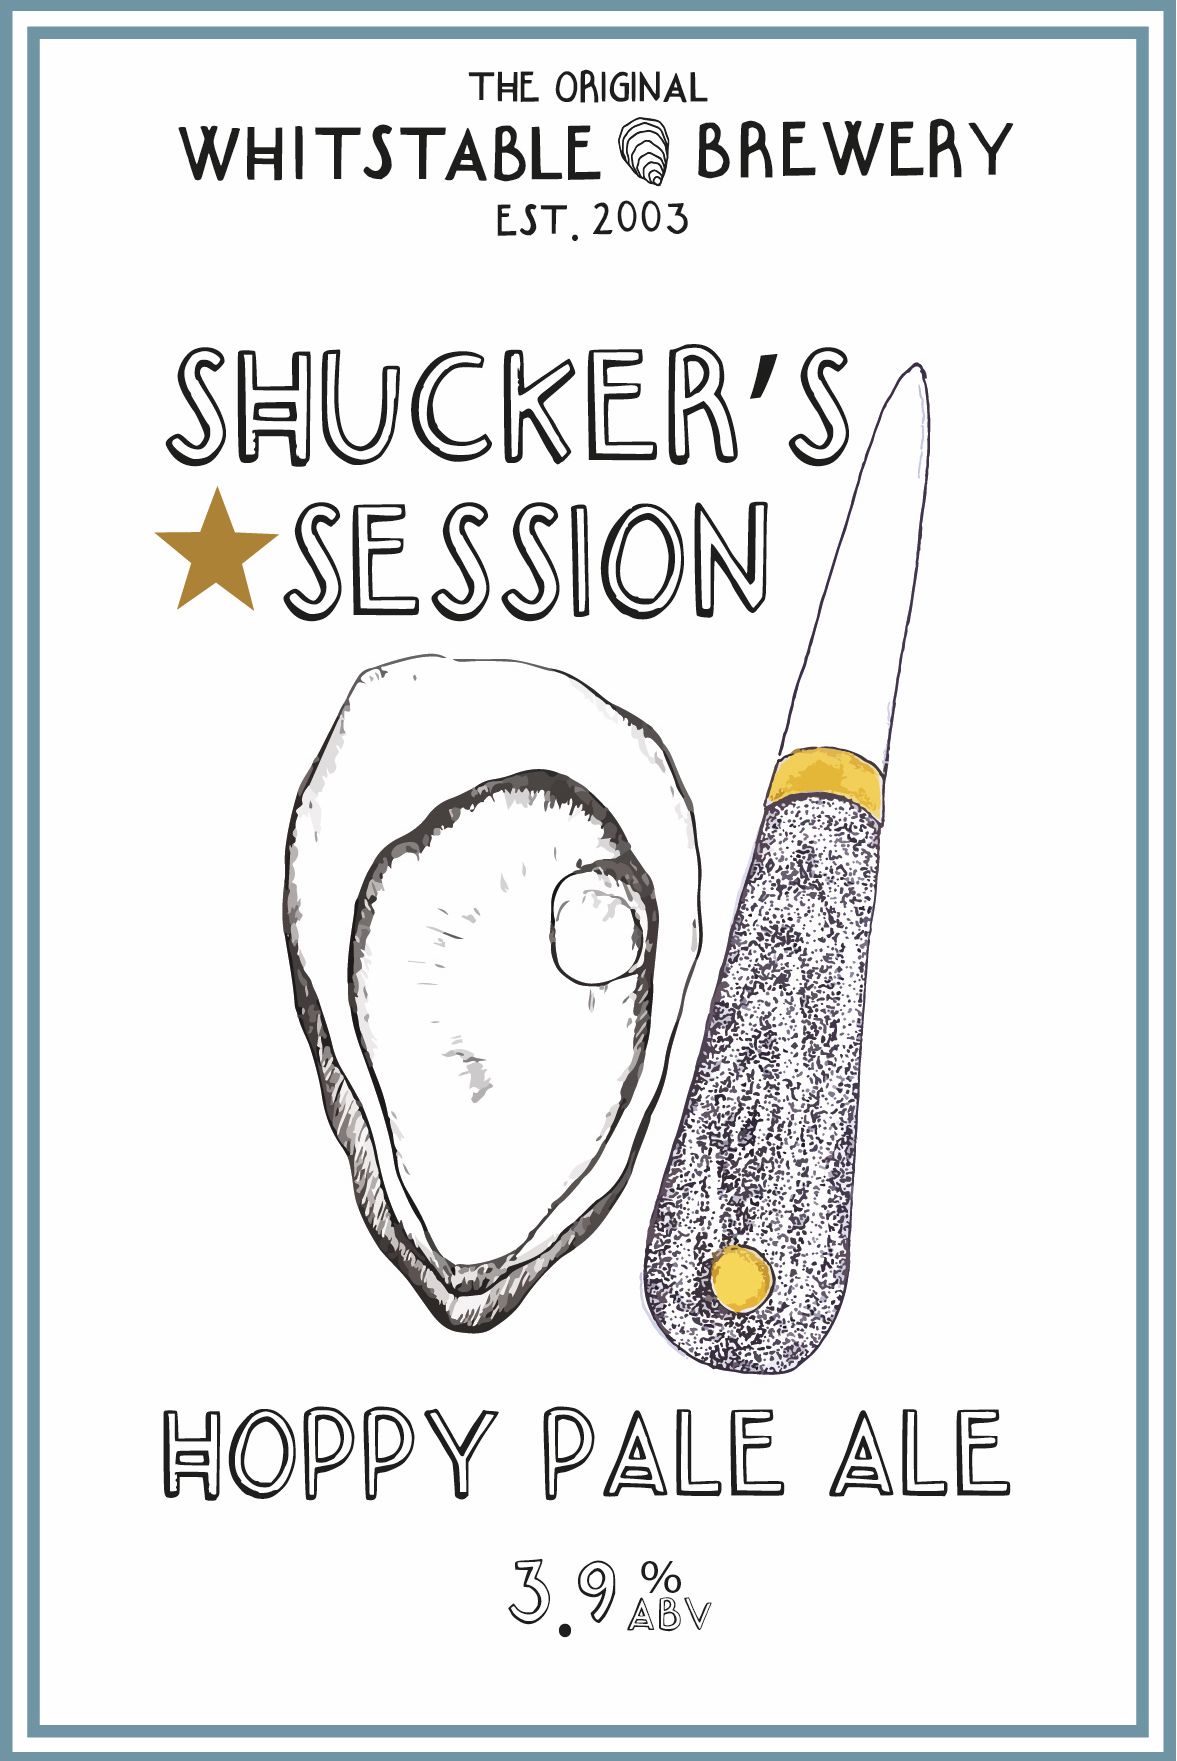 Shucker's Session Hoppy Pale Ale